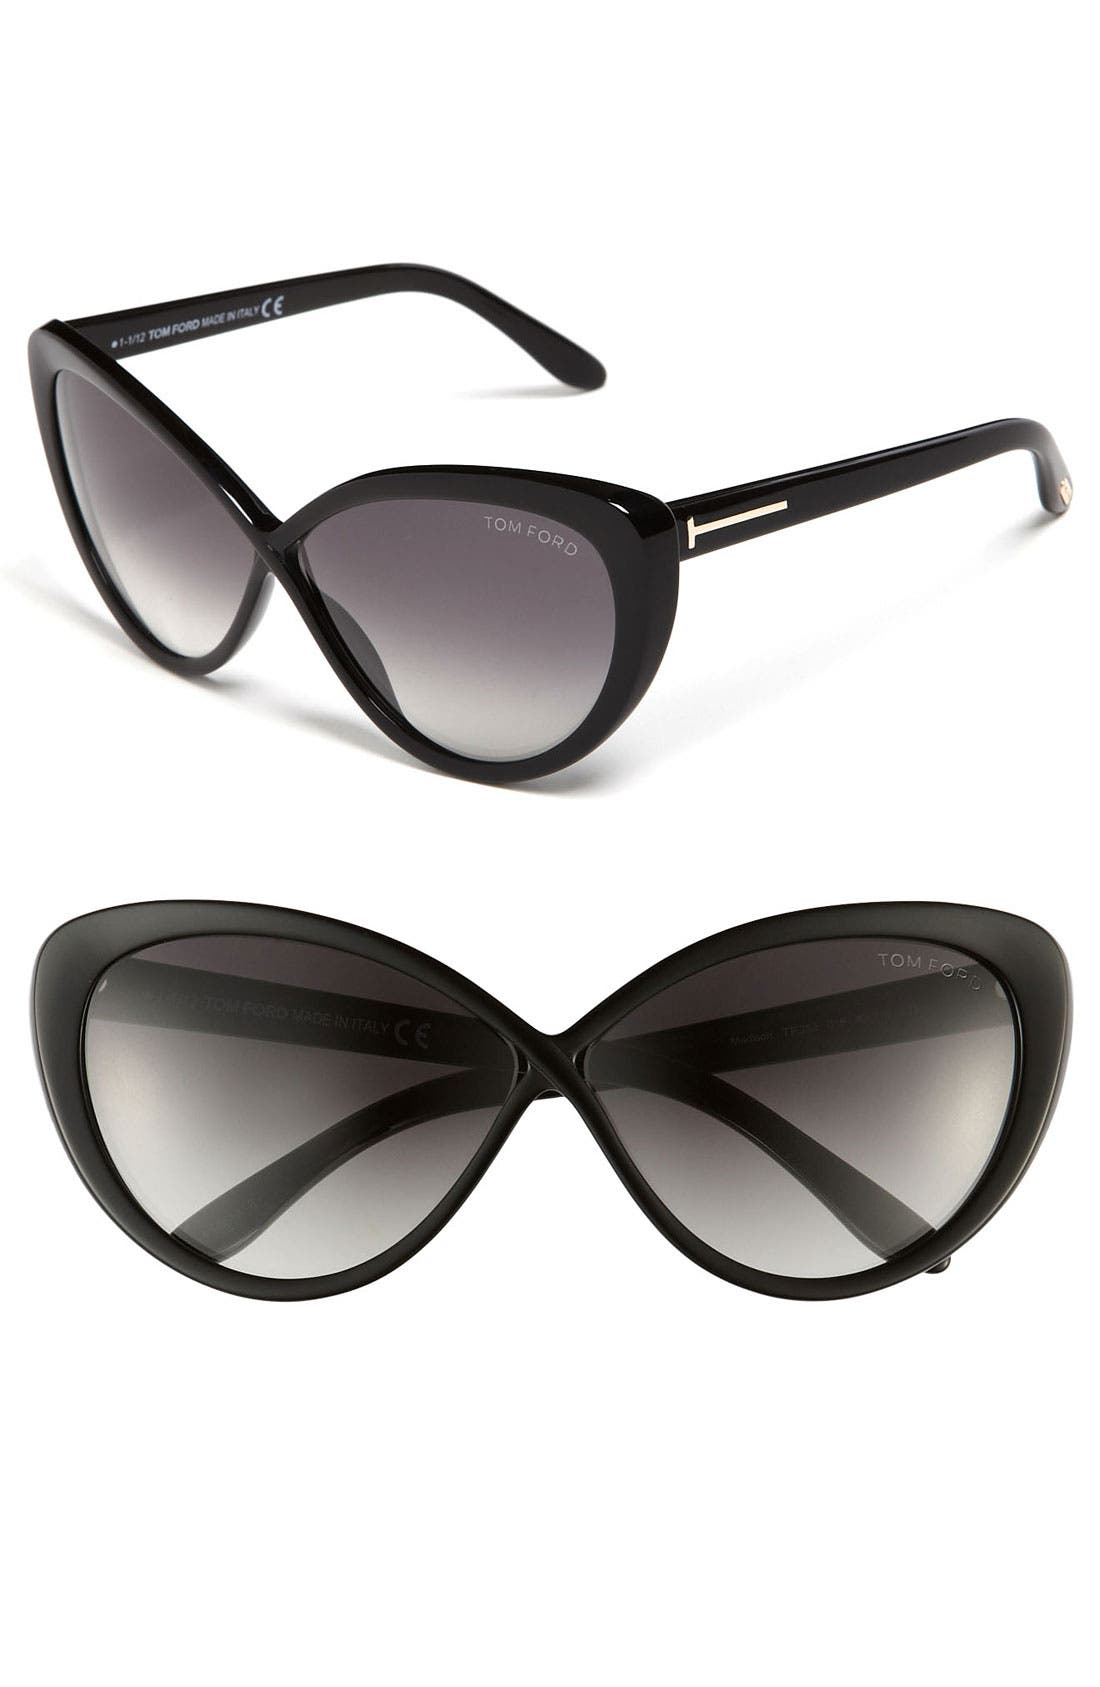 Alternate Image 1 Selected - Tom Ford 'Madison' 63mm Retro Sunglasses